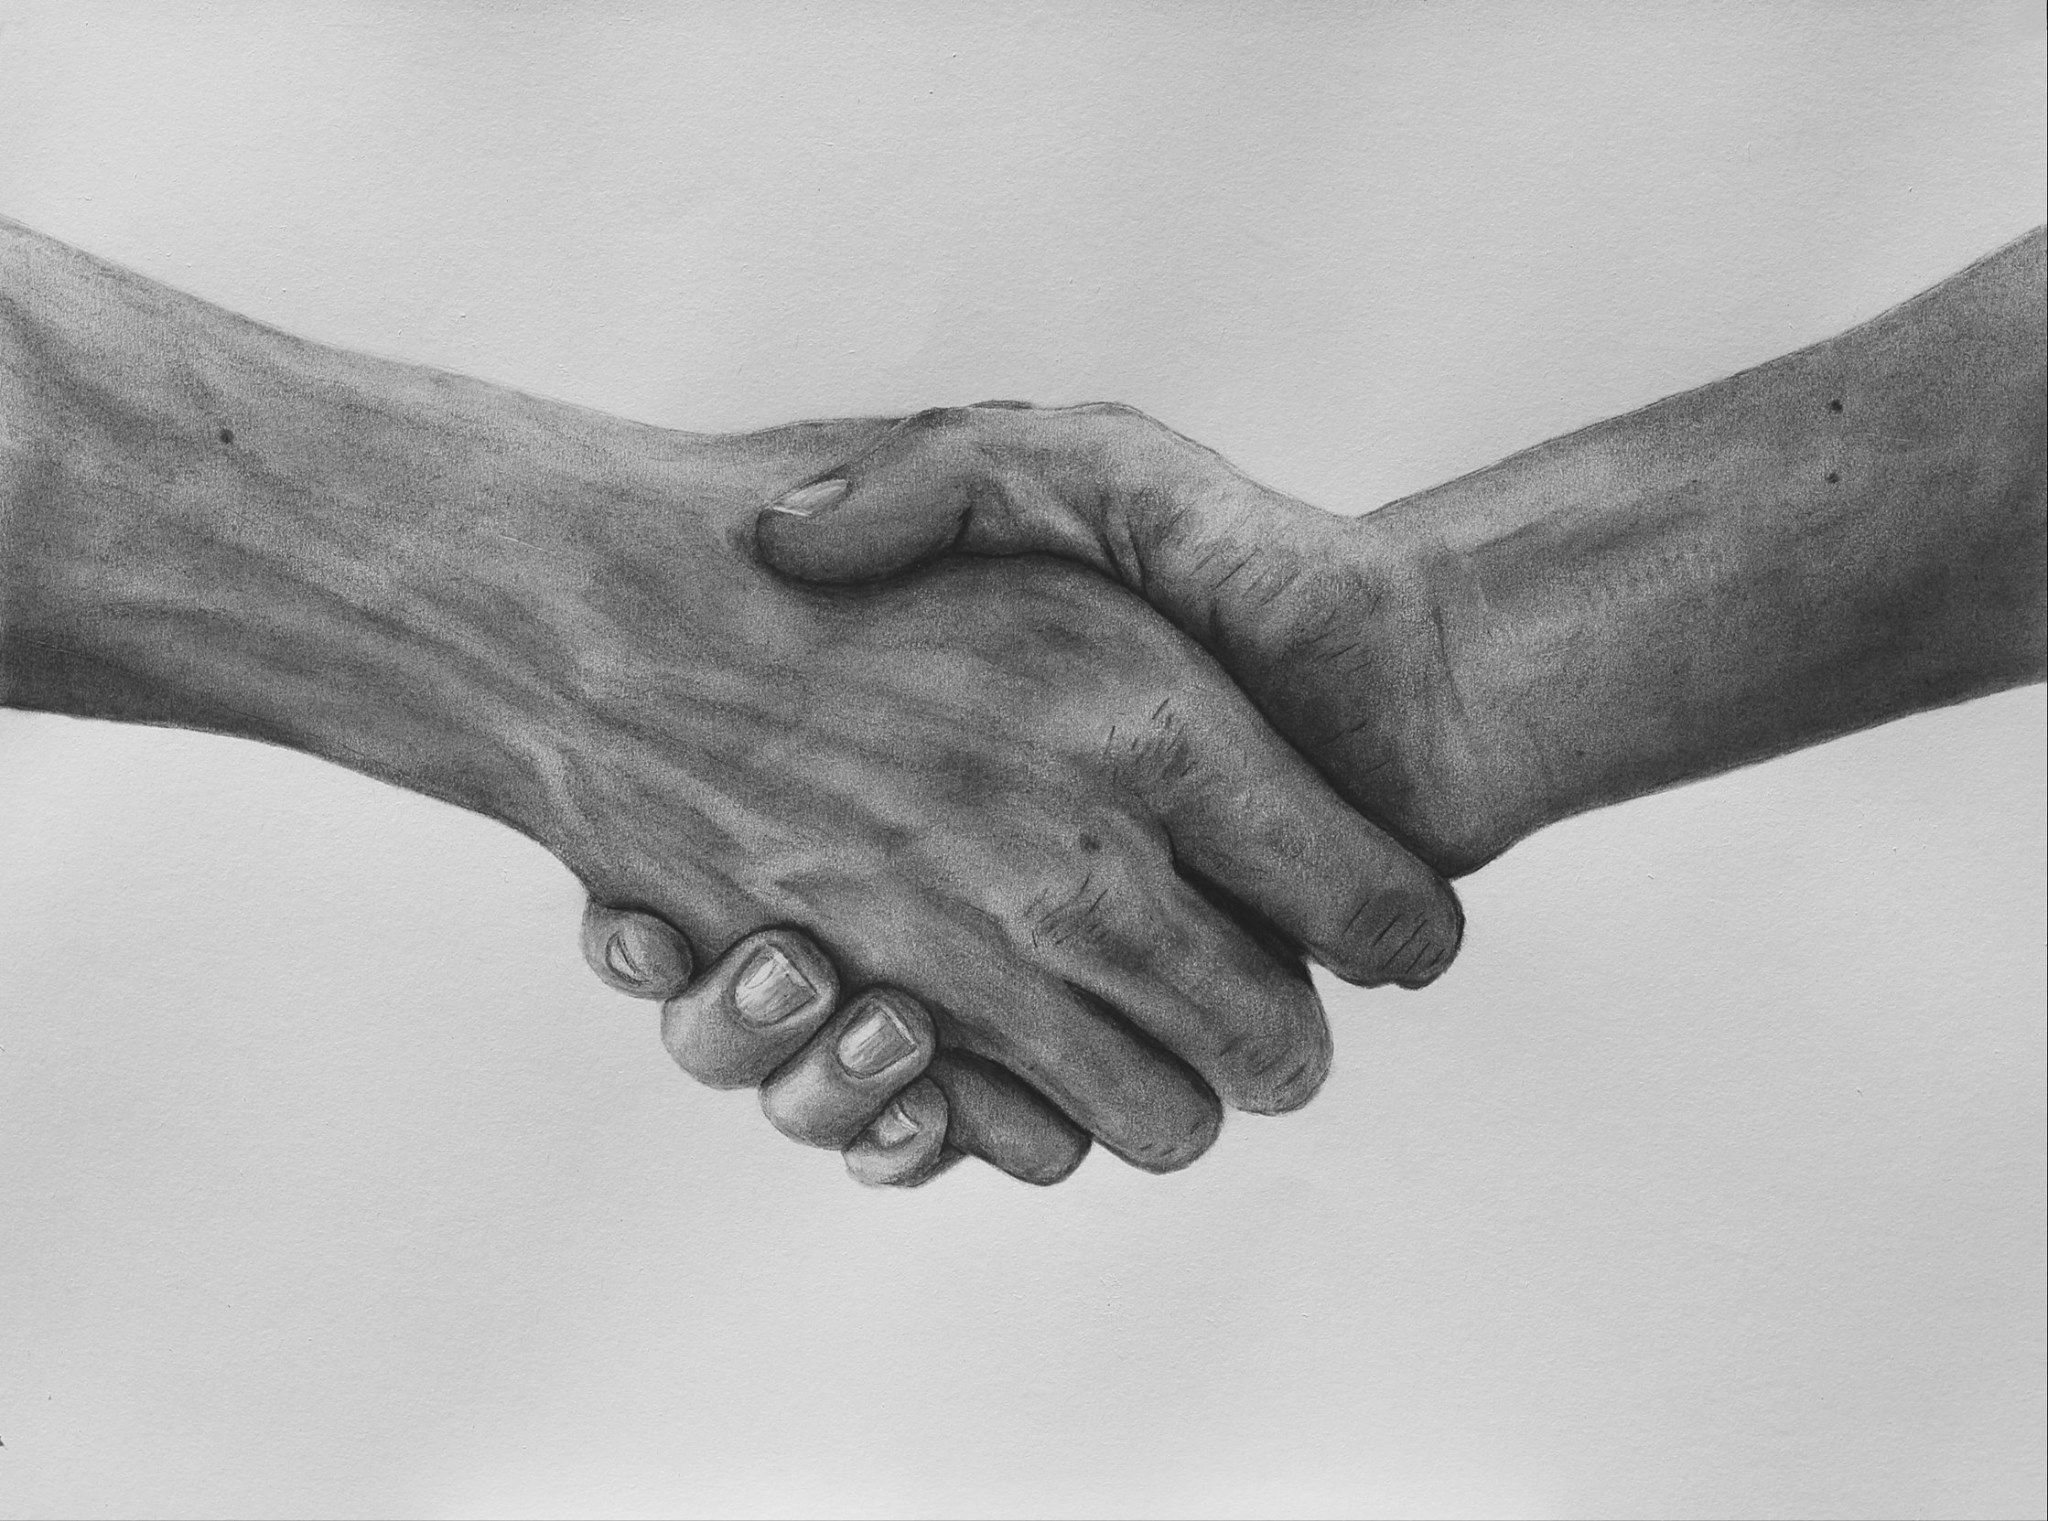 Handshake Charcoal On Paper By Adrian Ball Paintings For Sale Bluethumb Online Art Gallery Hand Drawing Reference How To Draw Hands Art Pages Get inspired for two hands holding each